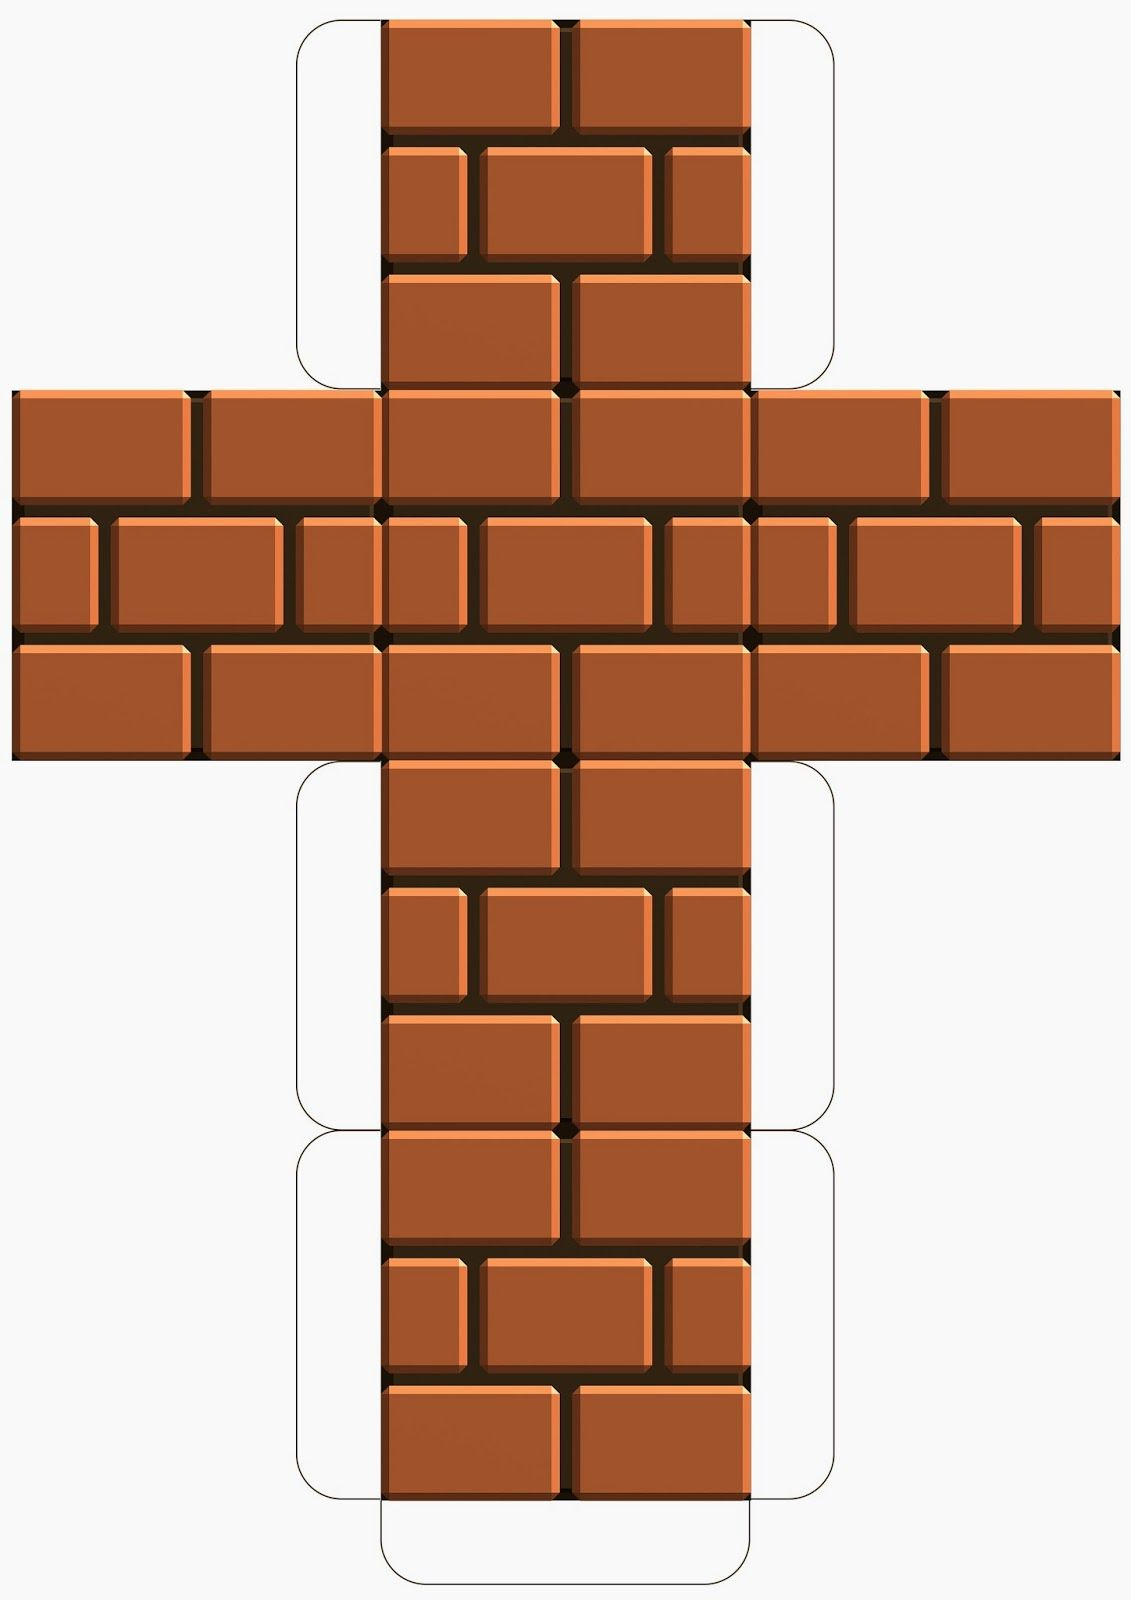 Super Mario Downloadable Brick Block Template | Super Mario birthday ...